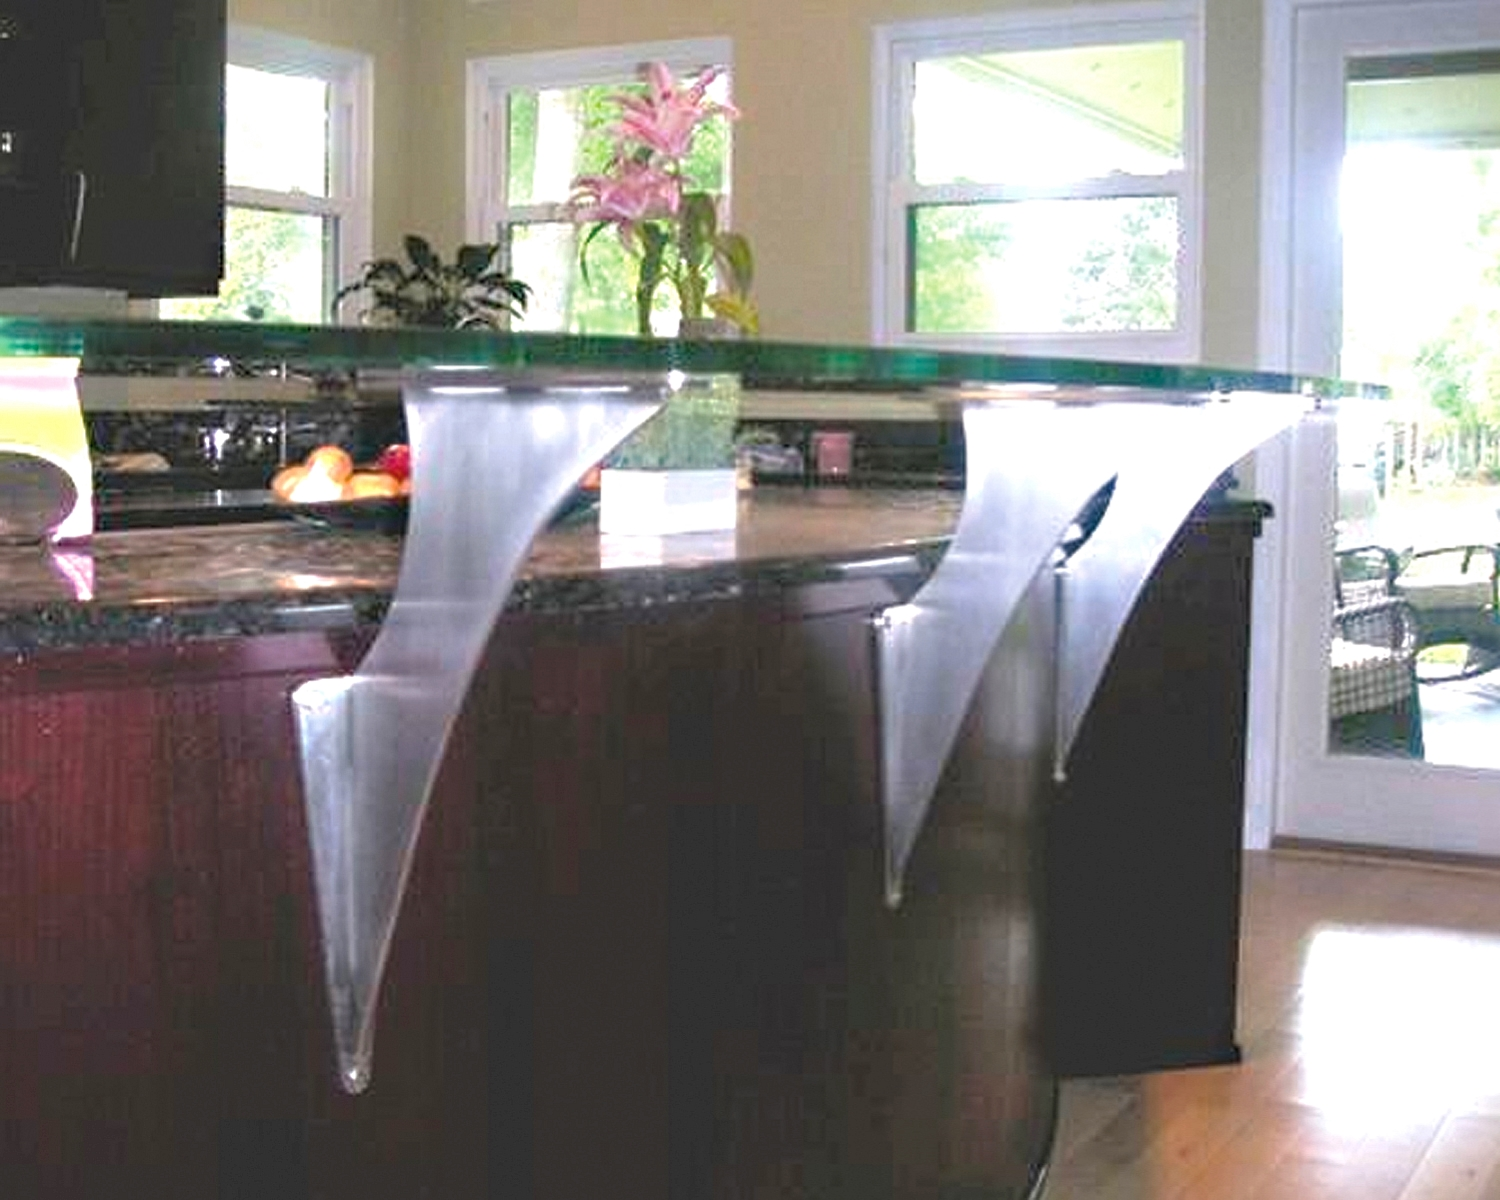 Corbel Countertop Support Outwater Introduces Its Steel Countertop Support Brackets